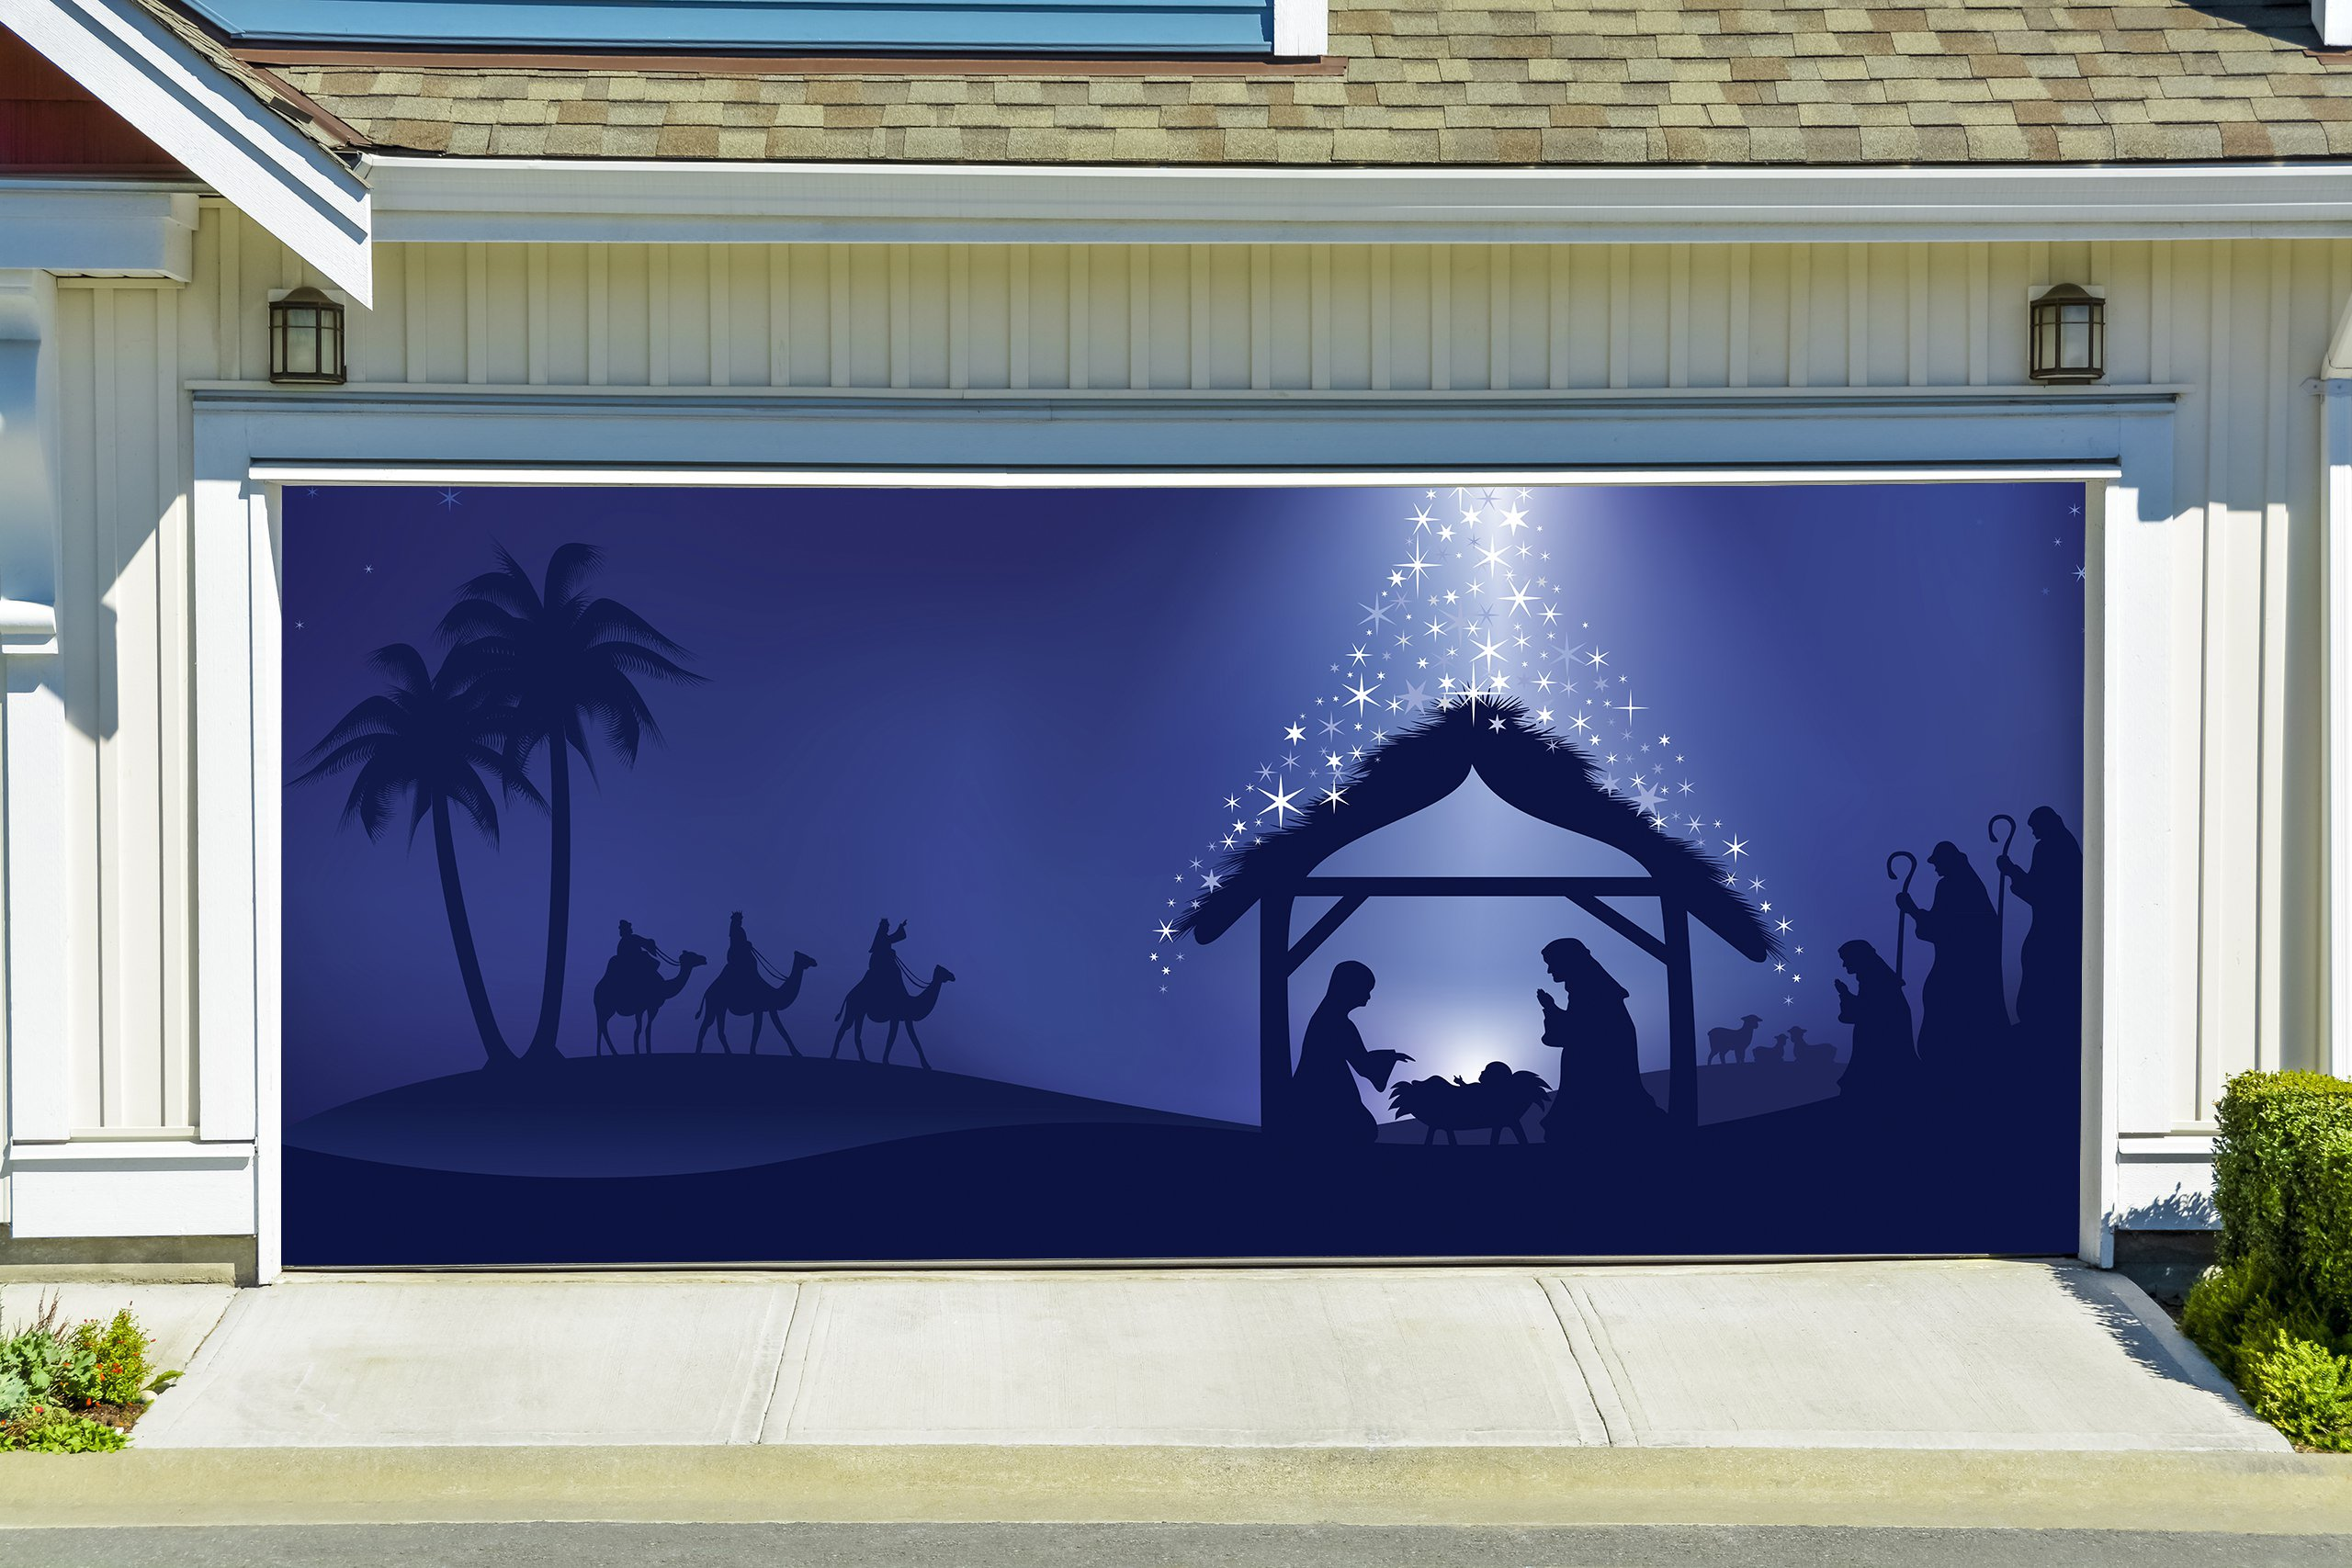 Holy Night Decor Banners for 2 Car Garage Door Covers Outdoor Jesus Murals 3D Effect Christmas Nativity Scene Full Color House Billboard Garage Door Holiday Christmas size 82x188 inches DAV219 by WallTattooHome